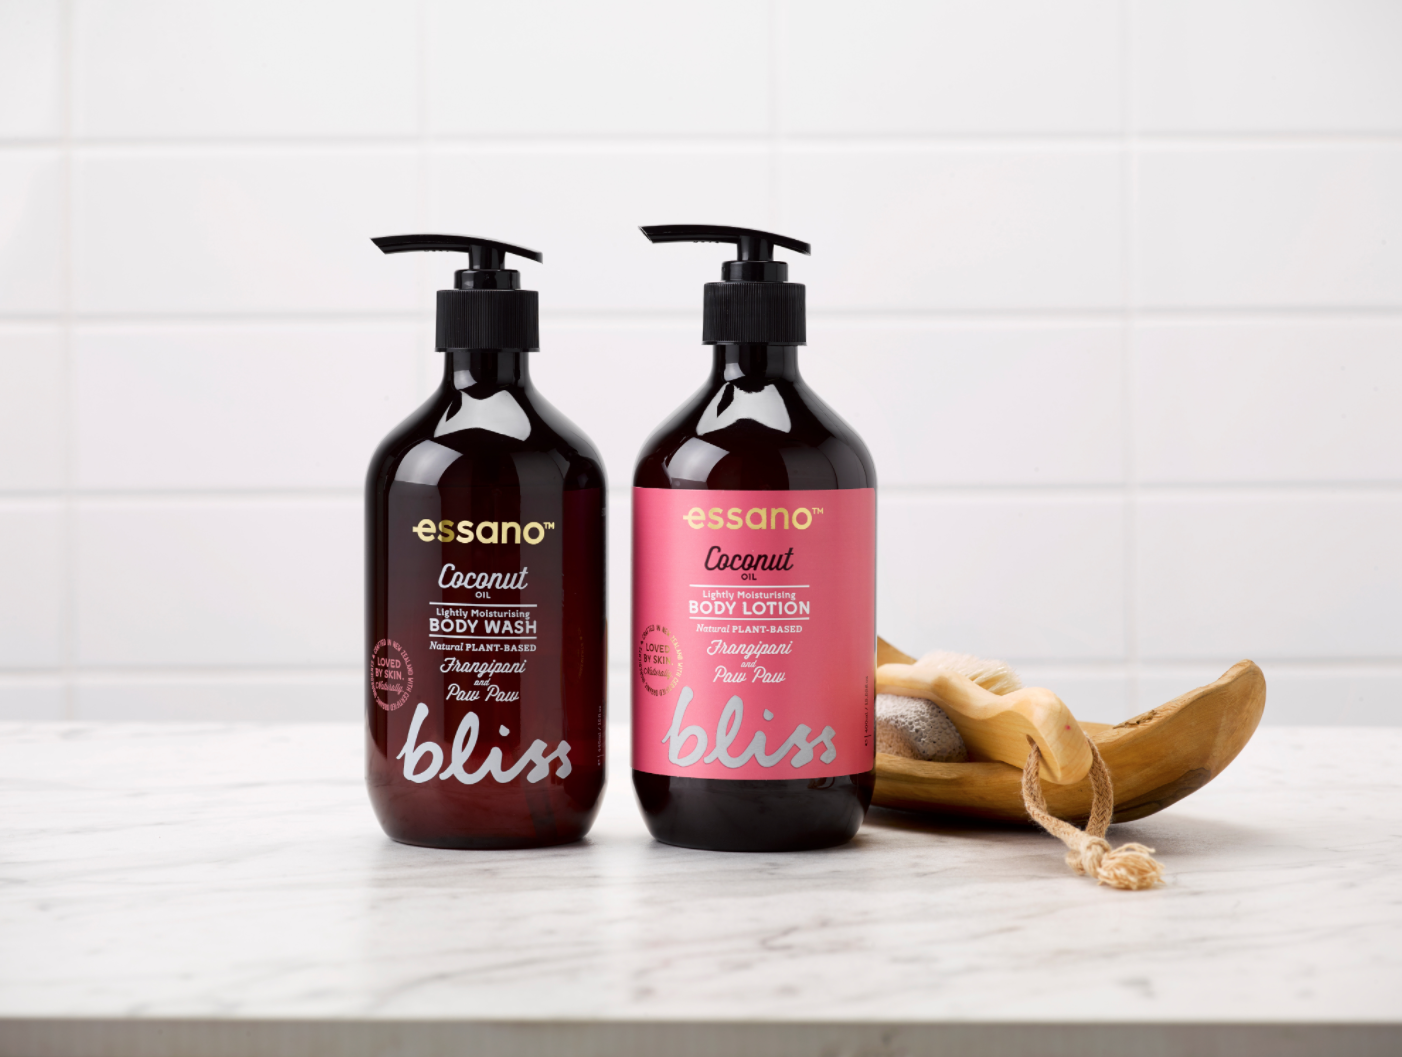 Two Essano bottles sitting on a white bench next to a banana peel and body scrub brush